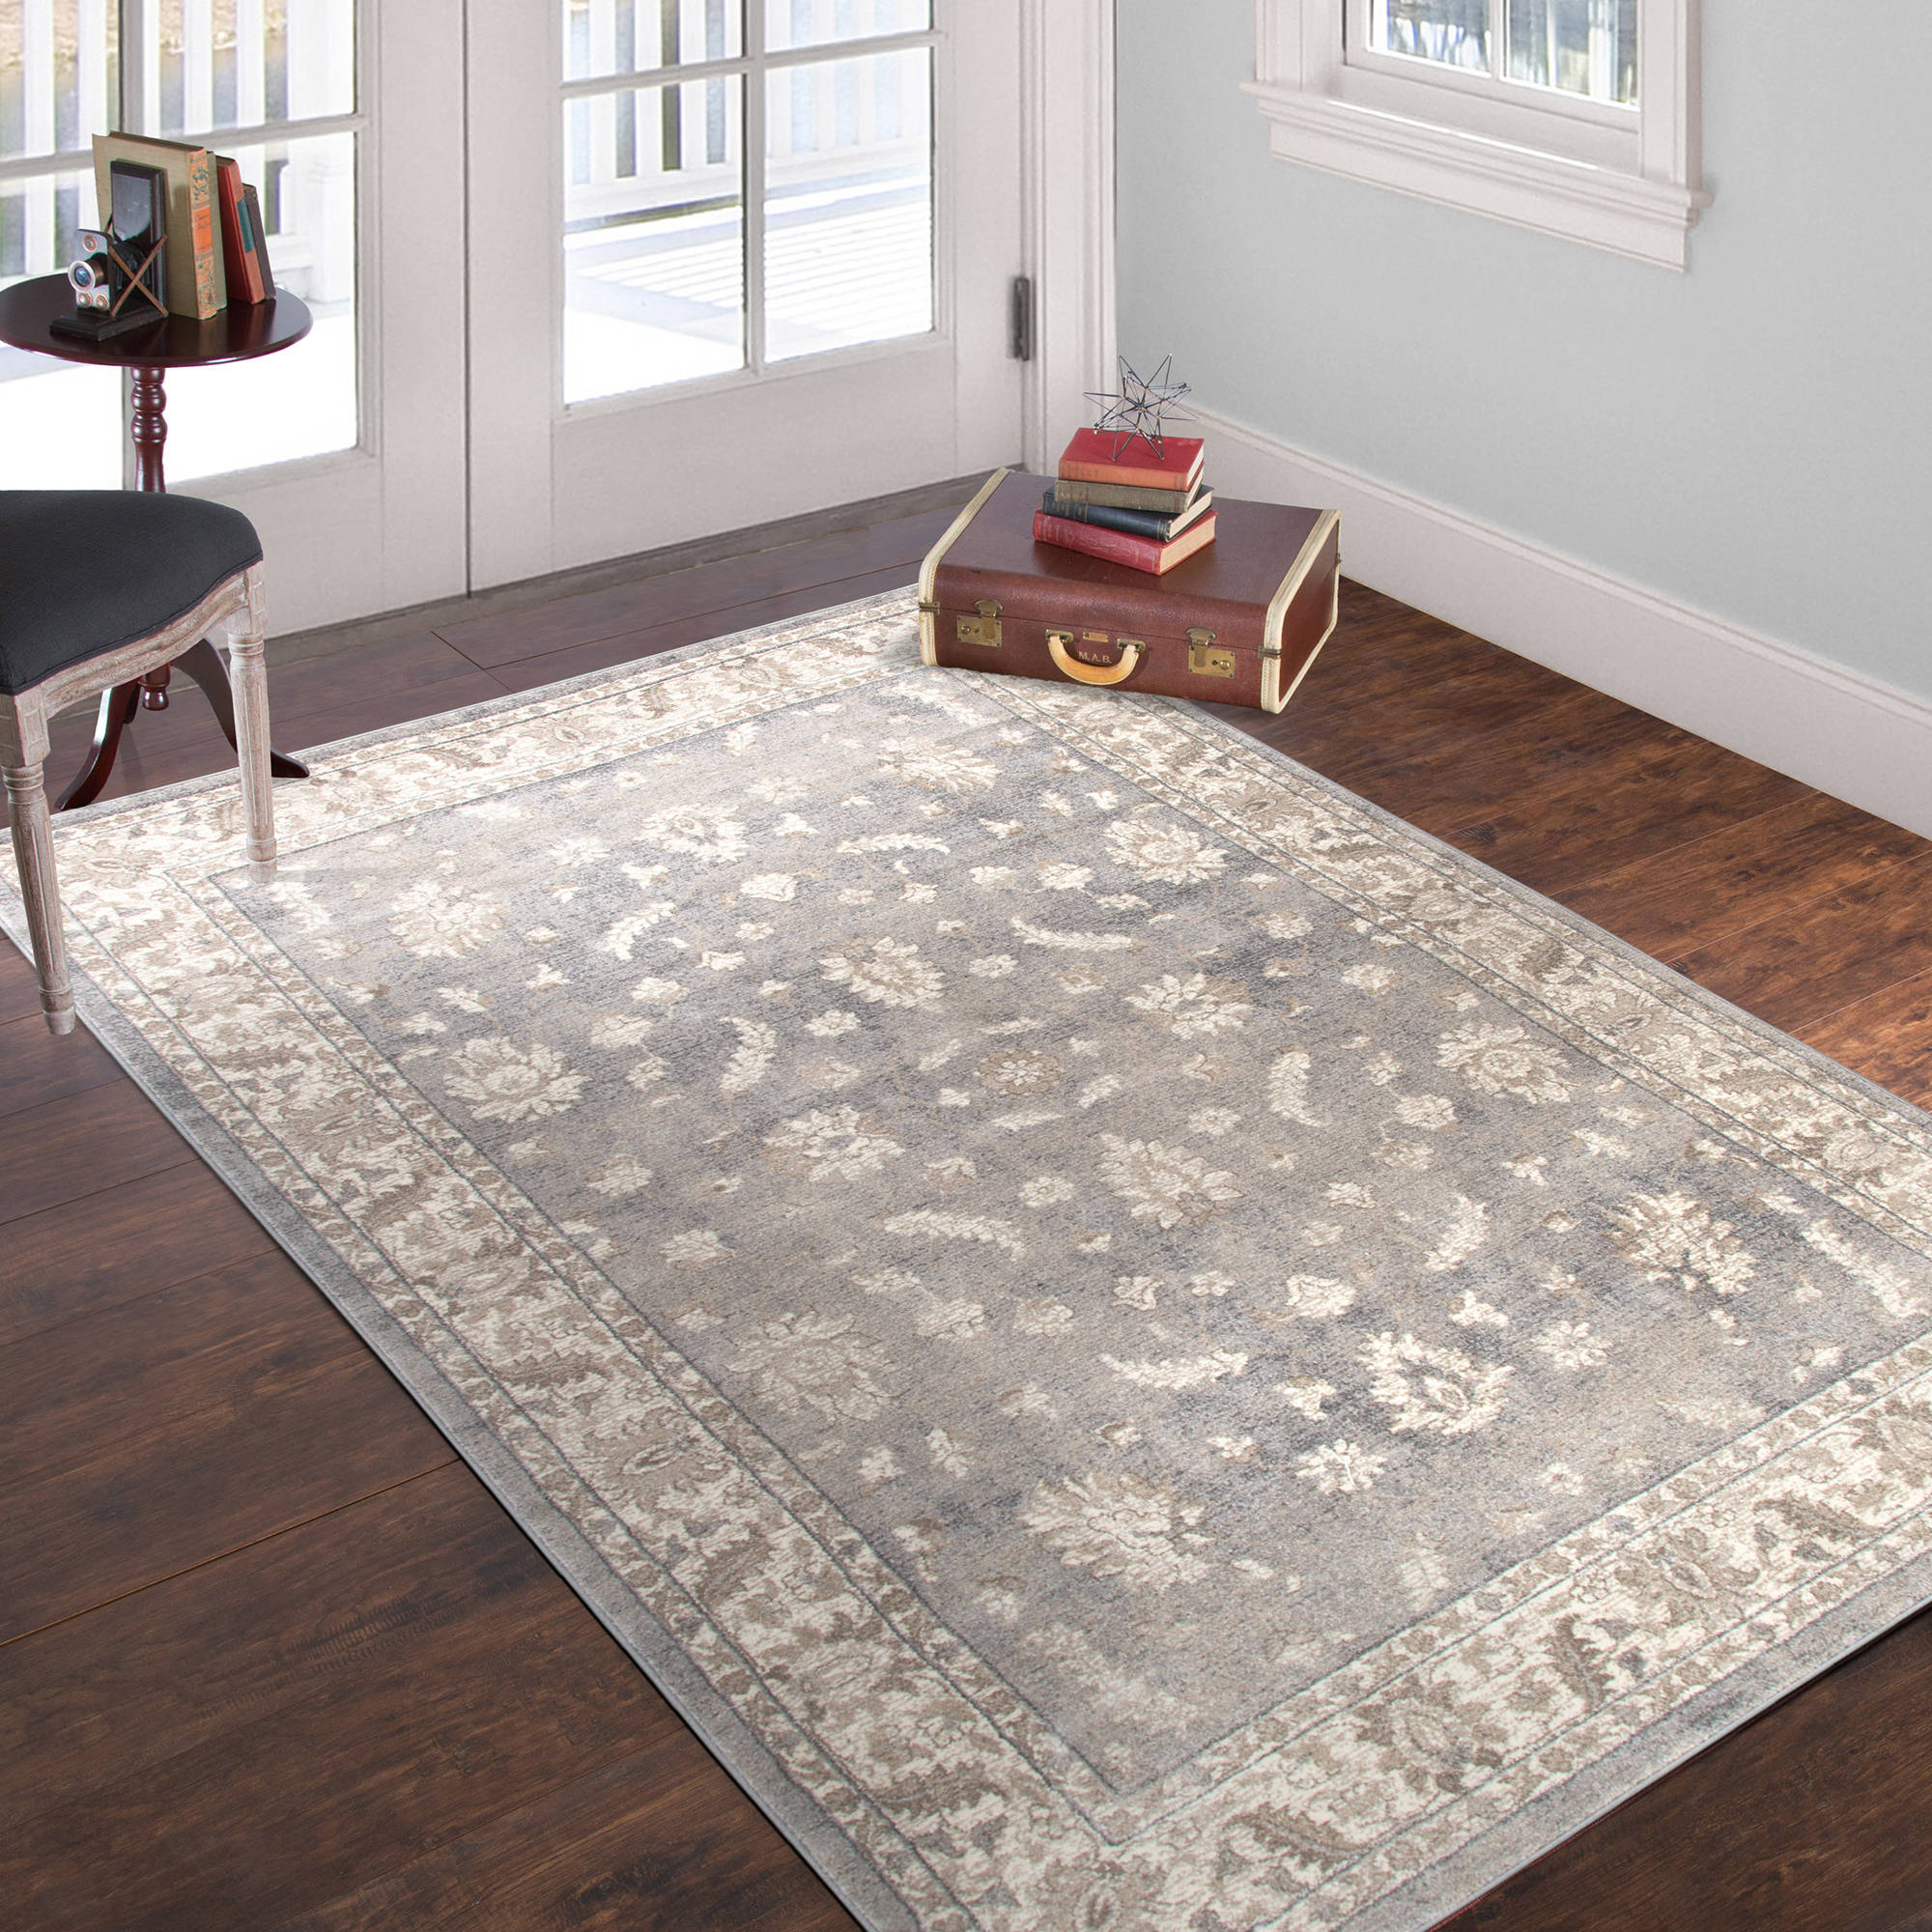 Somerset Home Vintage Floral Rug, Ivory Dark Grey by Trademark Global LLC